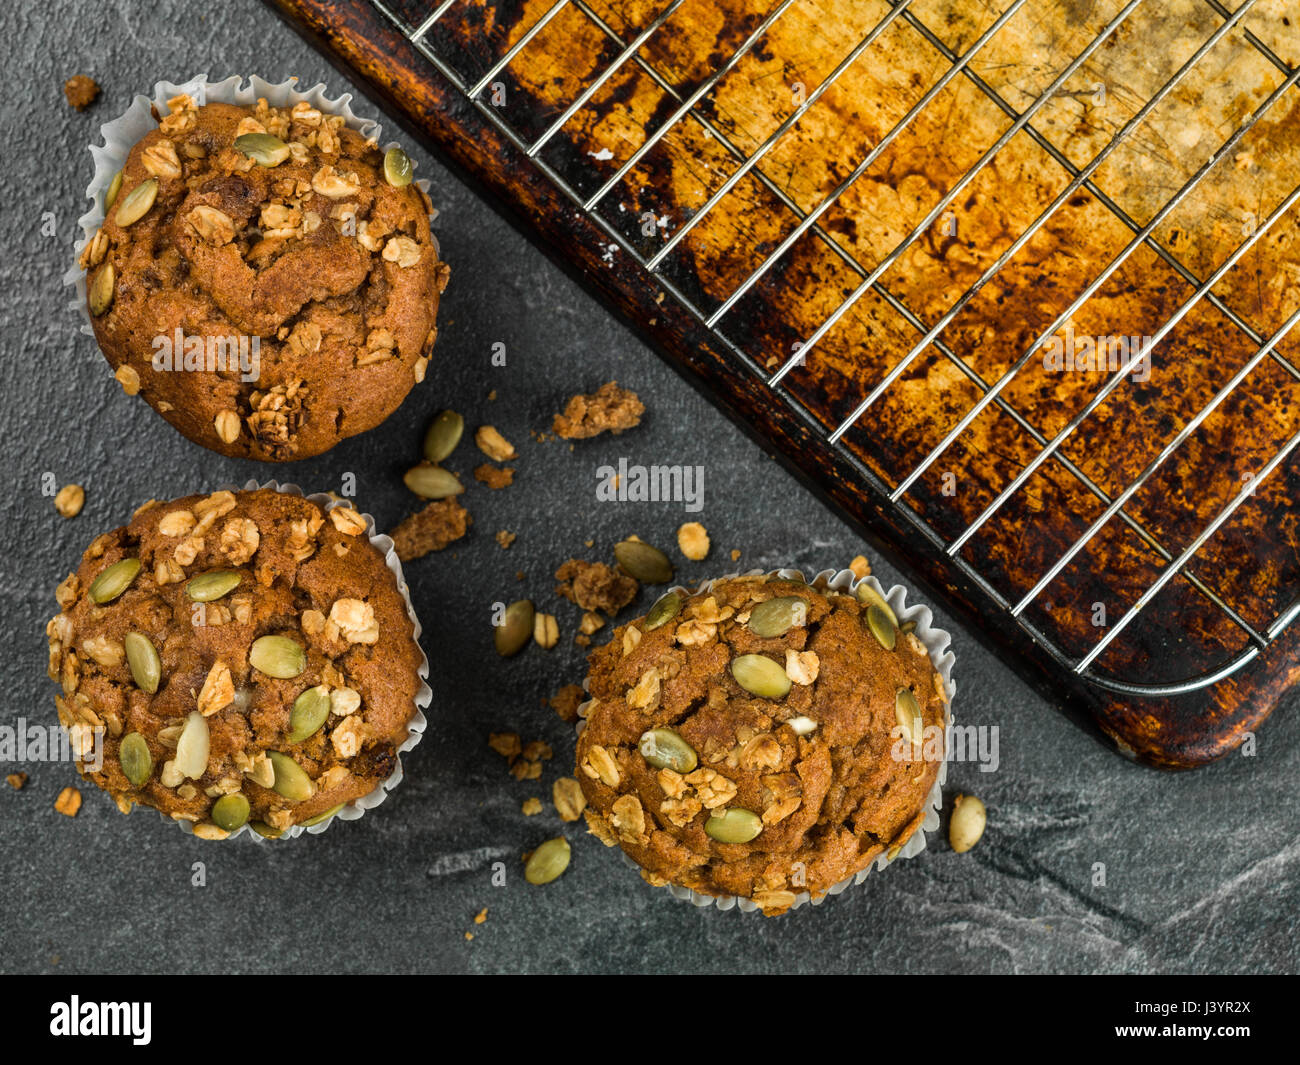 Spiced Carrot Muffin Cakes With Granola and Pumpkin Seeds Against a Black Tile Background Stock Photo